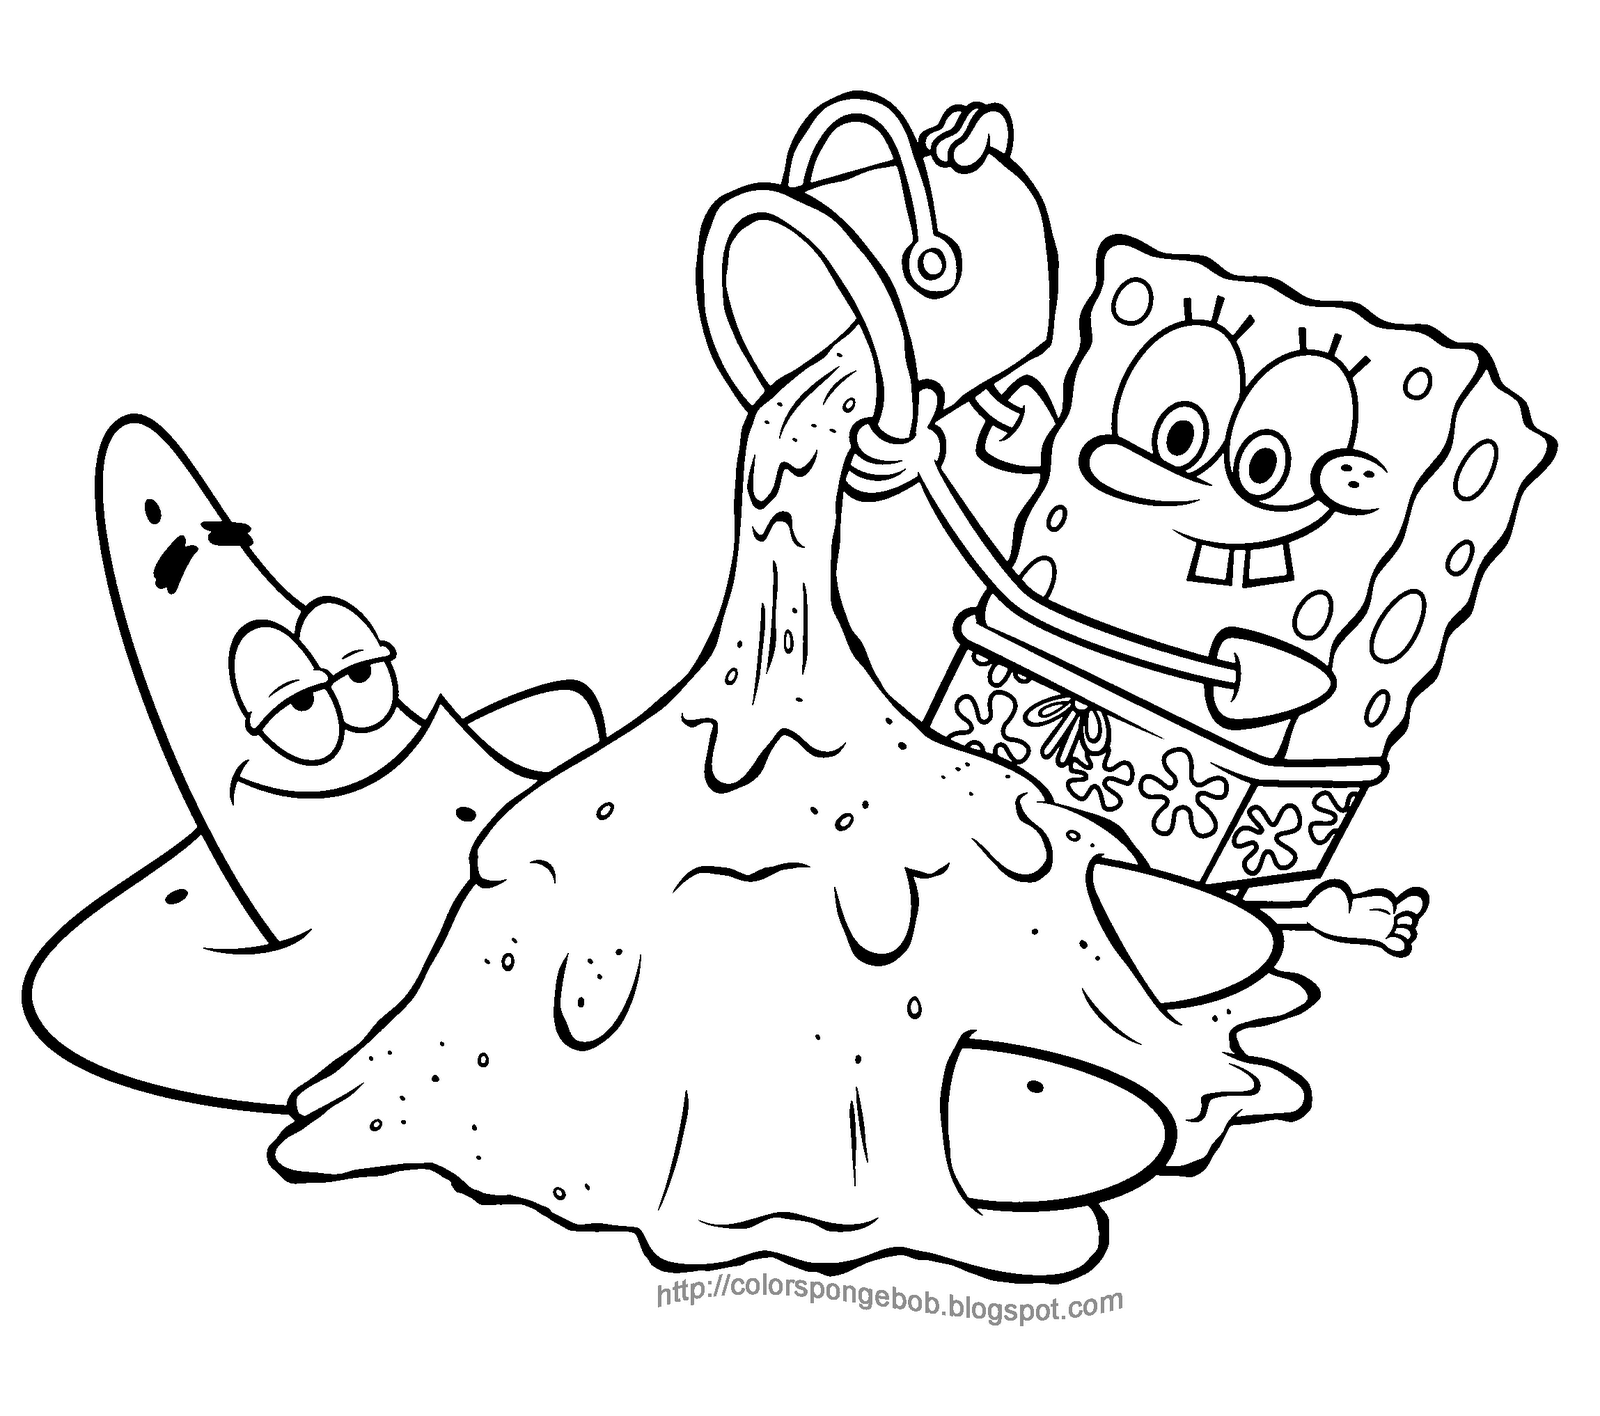 Kids Coloring Pages Spongebob Coloring Pages